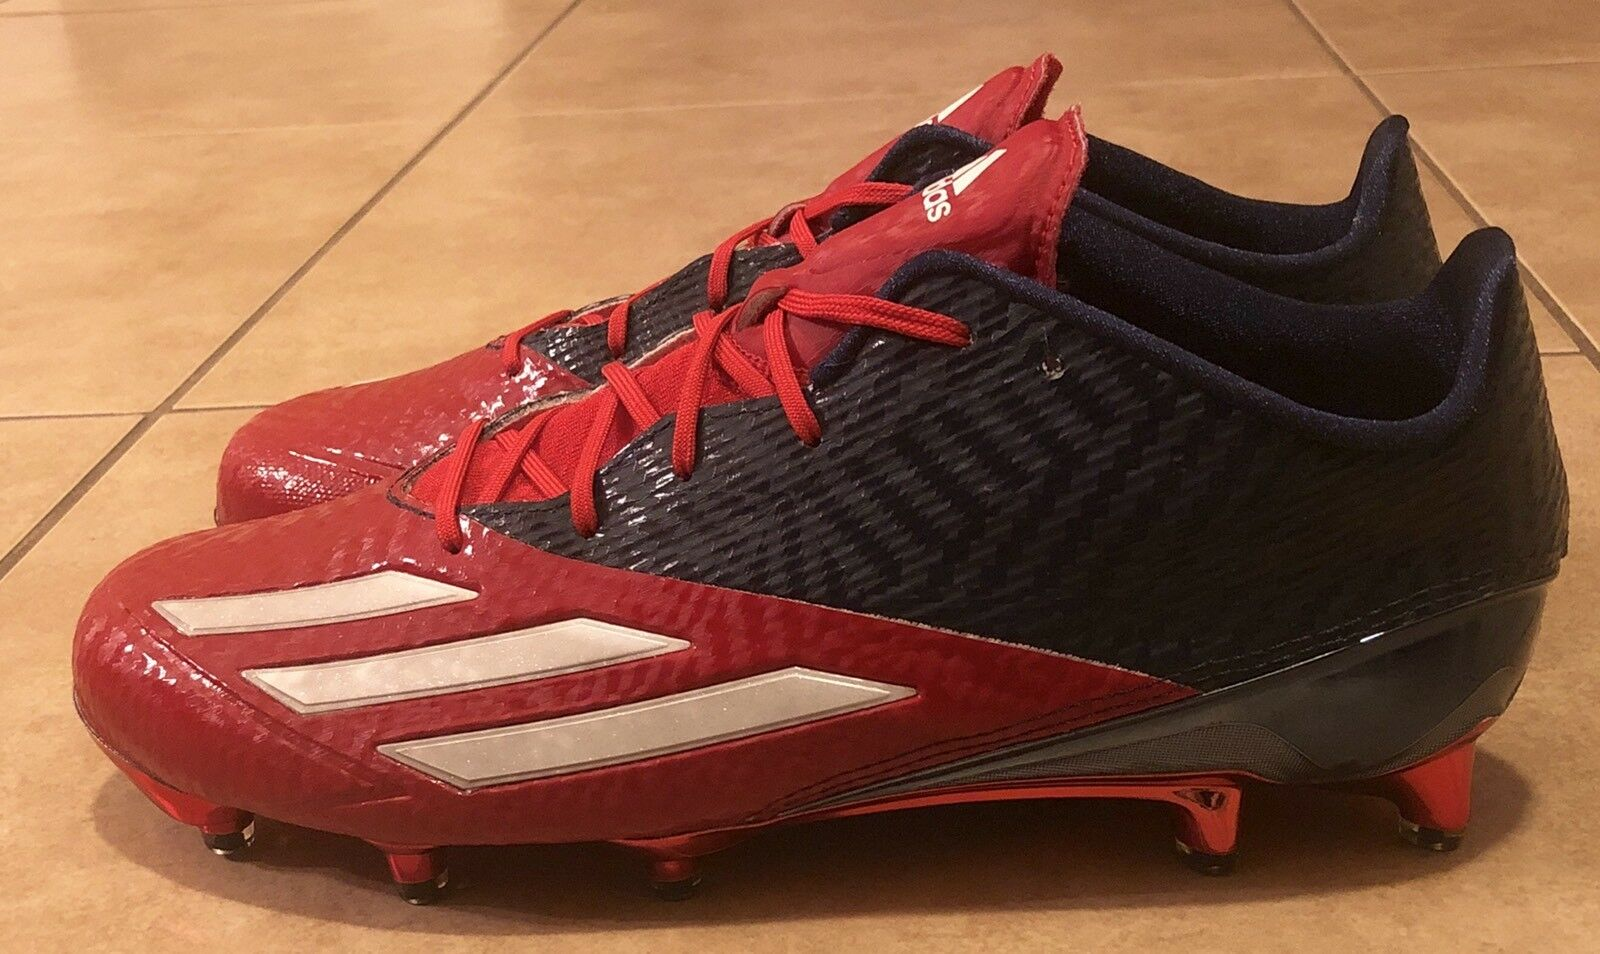 a3fdf4874 adidas Adizero 5 Star 5.0 Low Football Cleats Blue Red Men s Size 11 ...